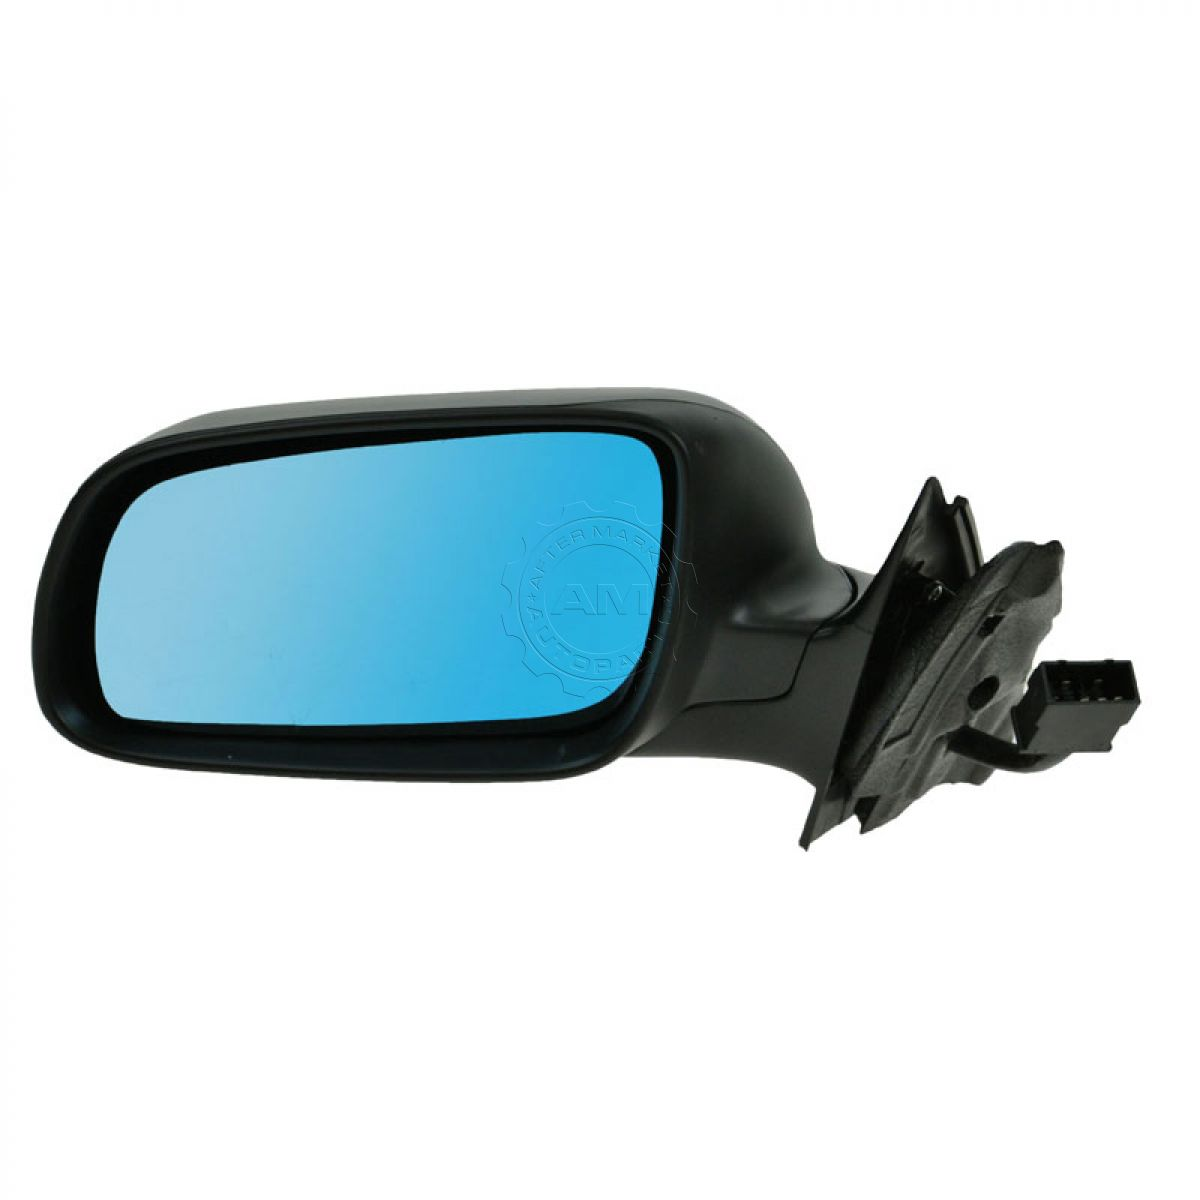 Power Heated Tinted Folding Side View Mirror Driver Left